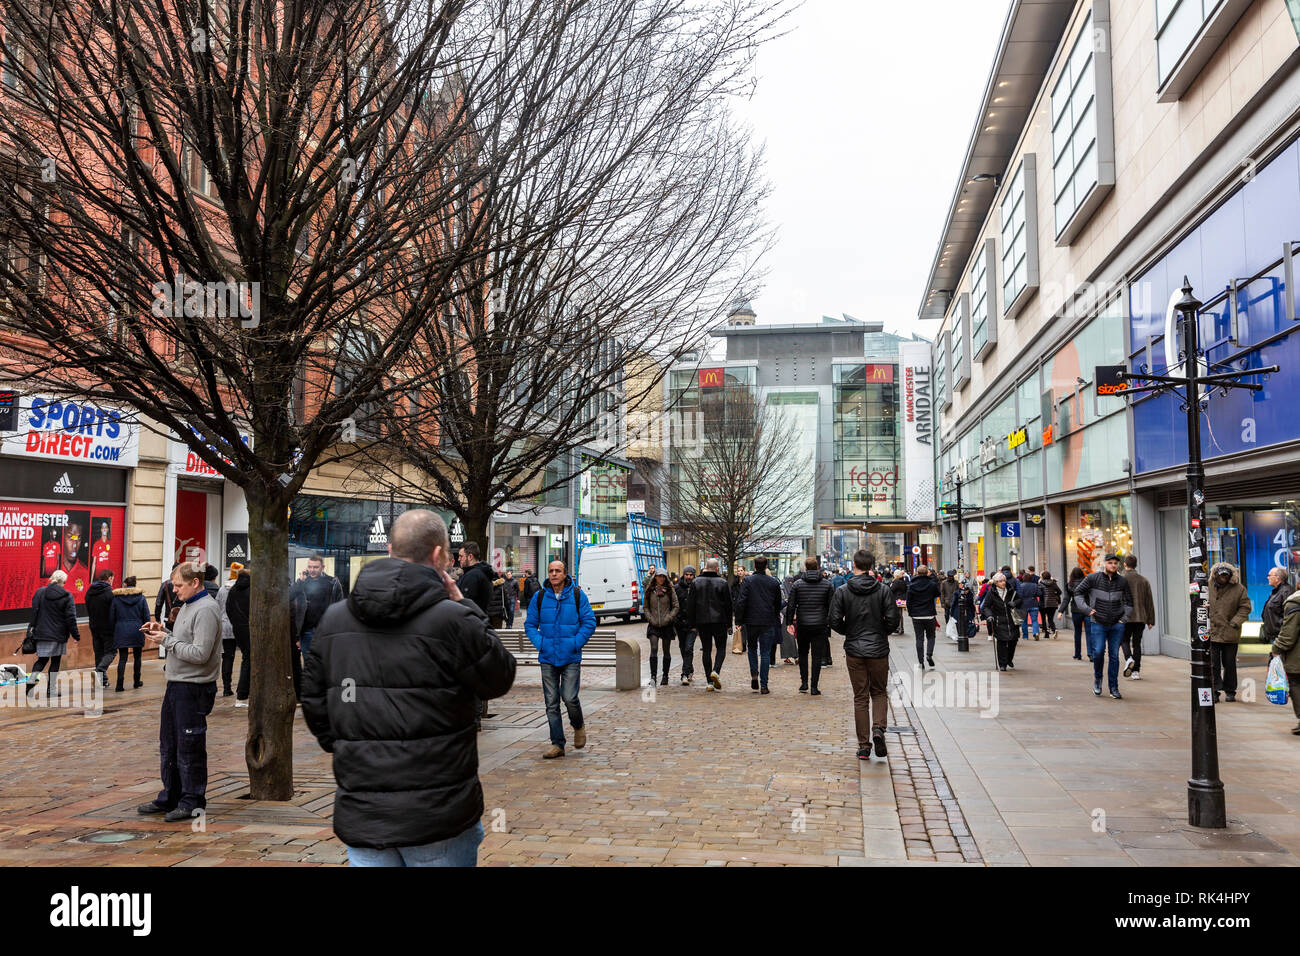 Shoppers in Manchester city centre on a winters day,Manchester,England - Stock Image